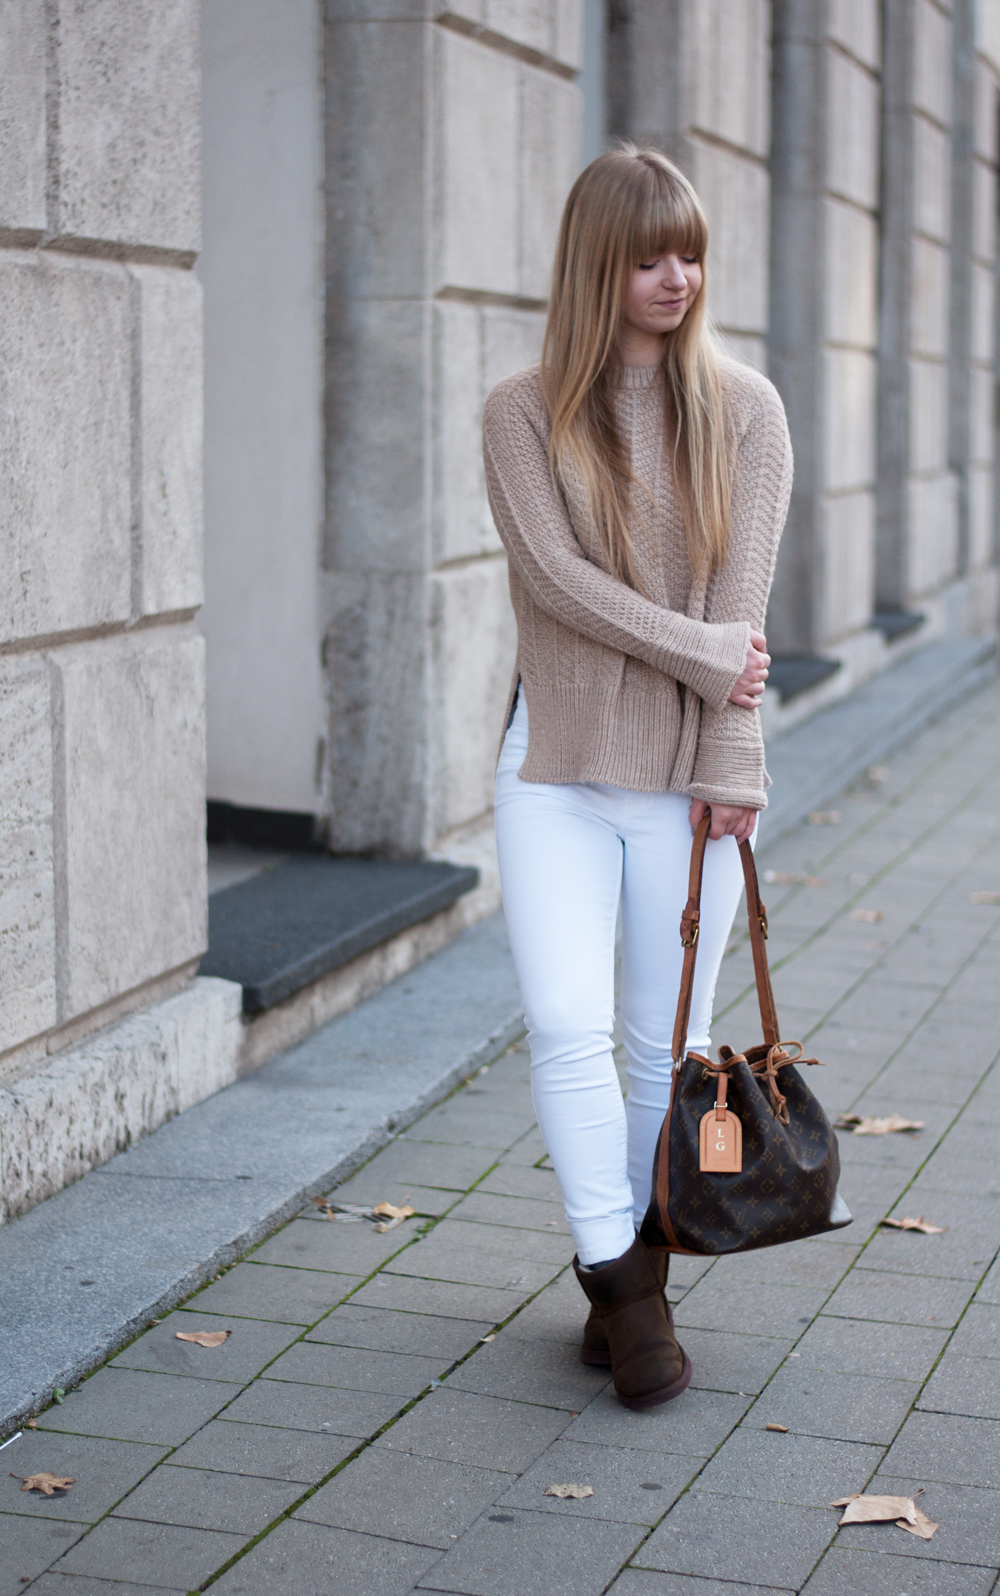 winter-outfit-cozy-look-fashionblogger-modeblog-knitwear-ugg-boots-camel-beige-louisvuitton-sac-noe-ootd-duisburg-nrw-2